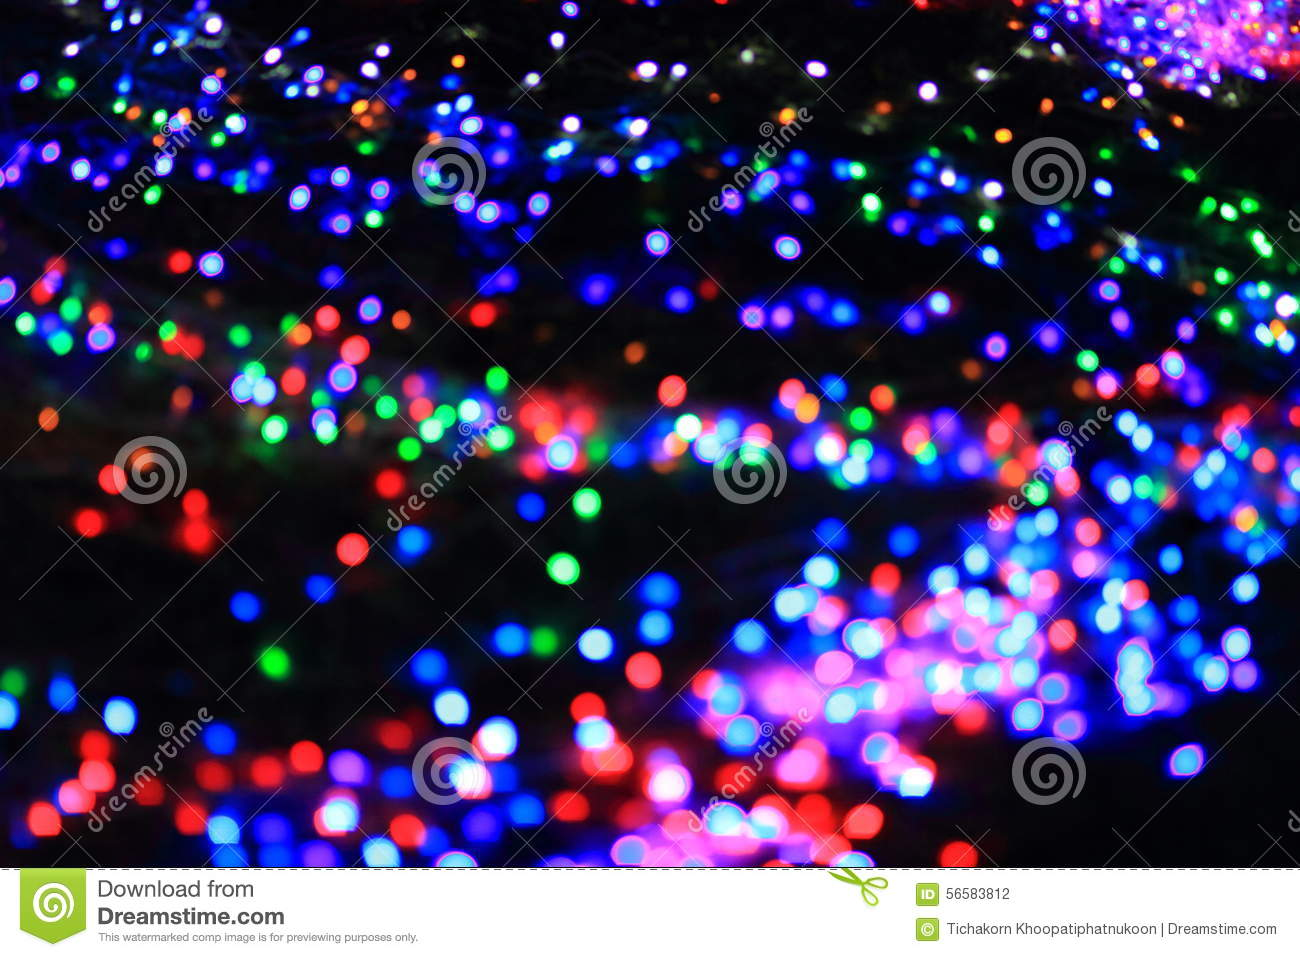 Colorful abstract blur nature background with bokeh